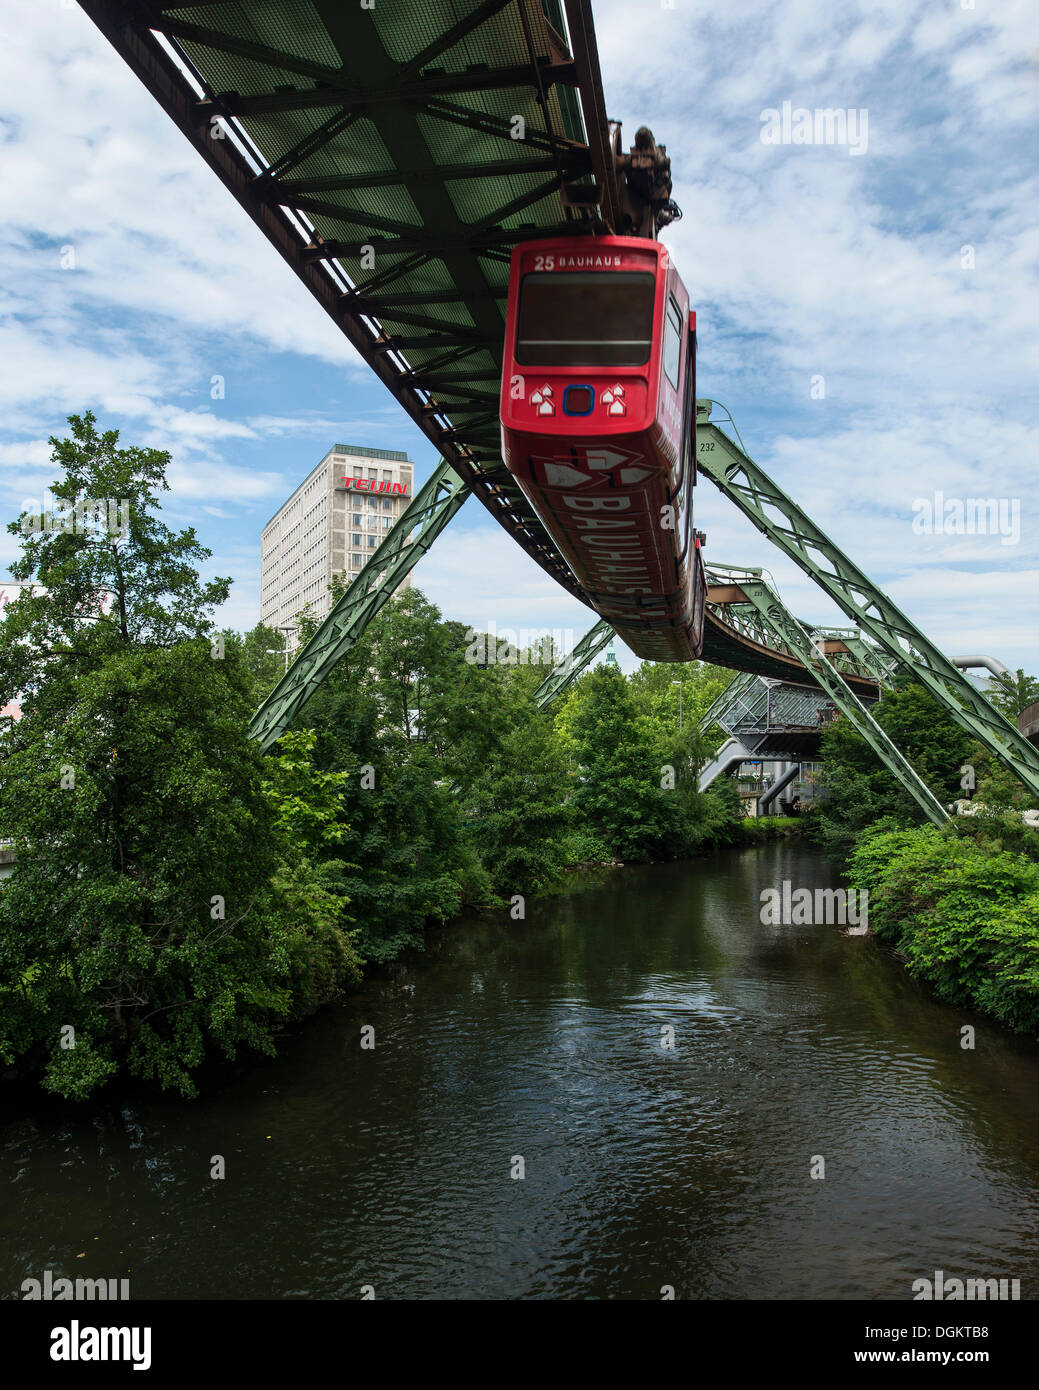 Wuppertal Schwebebahn or Wuppertal Floating Tram, suspension railway, landmark of Wuppertal, North Rhine-Westphalia - Stock Image